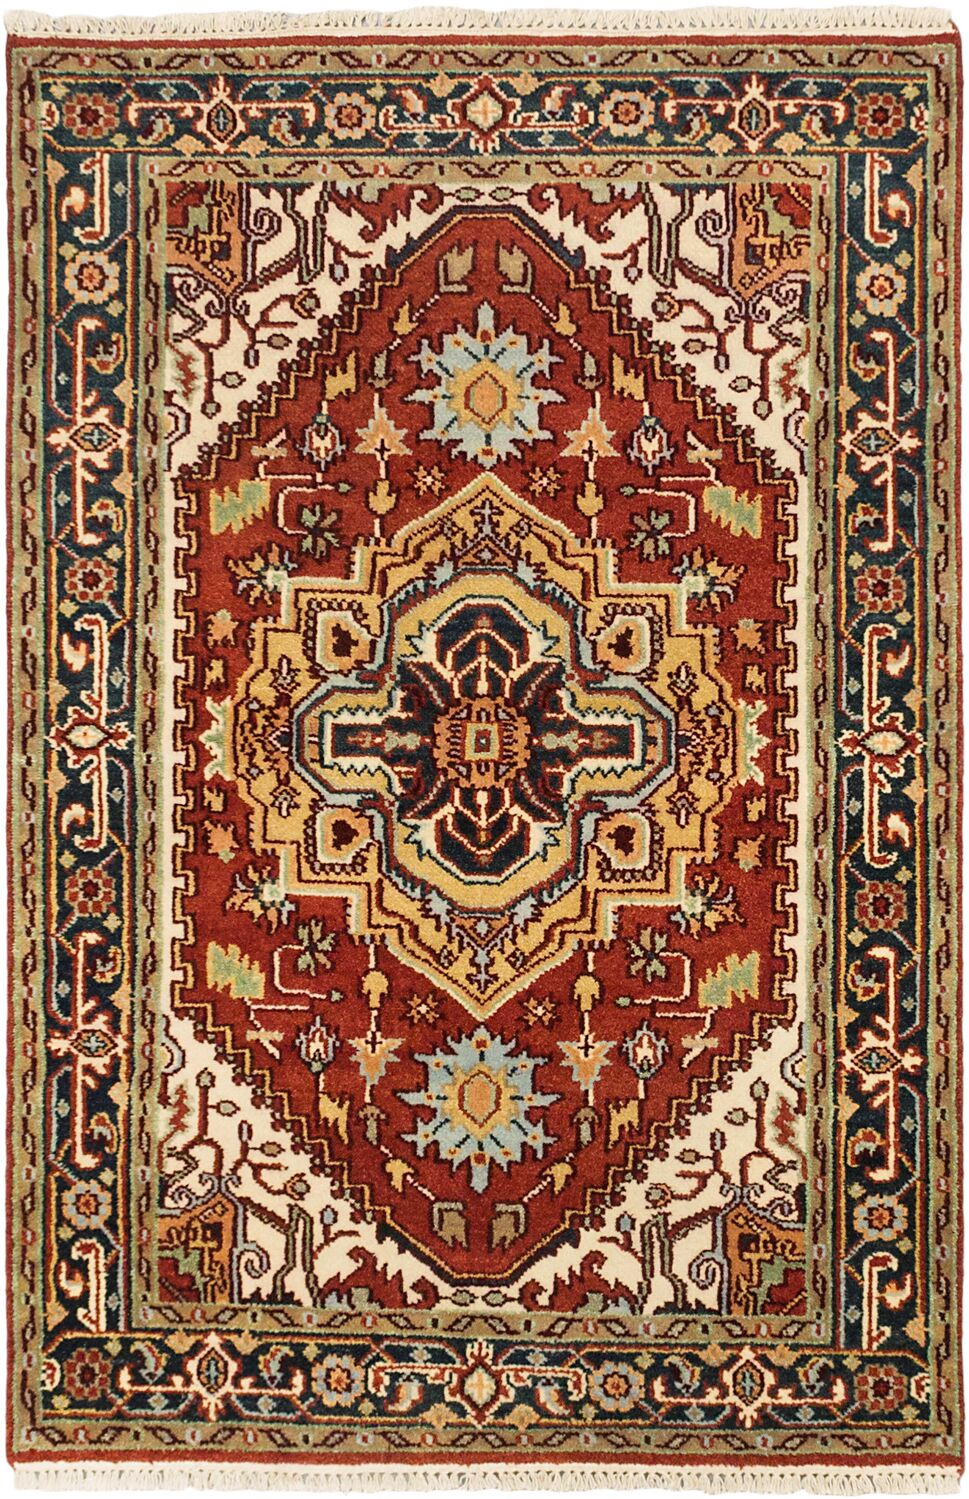 Baldry Hand-Knotted Dark Copper Area Rug Rug Size: 4' x 6'1